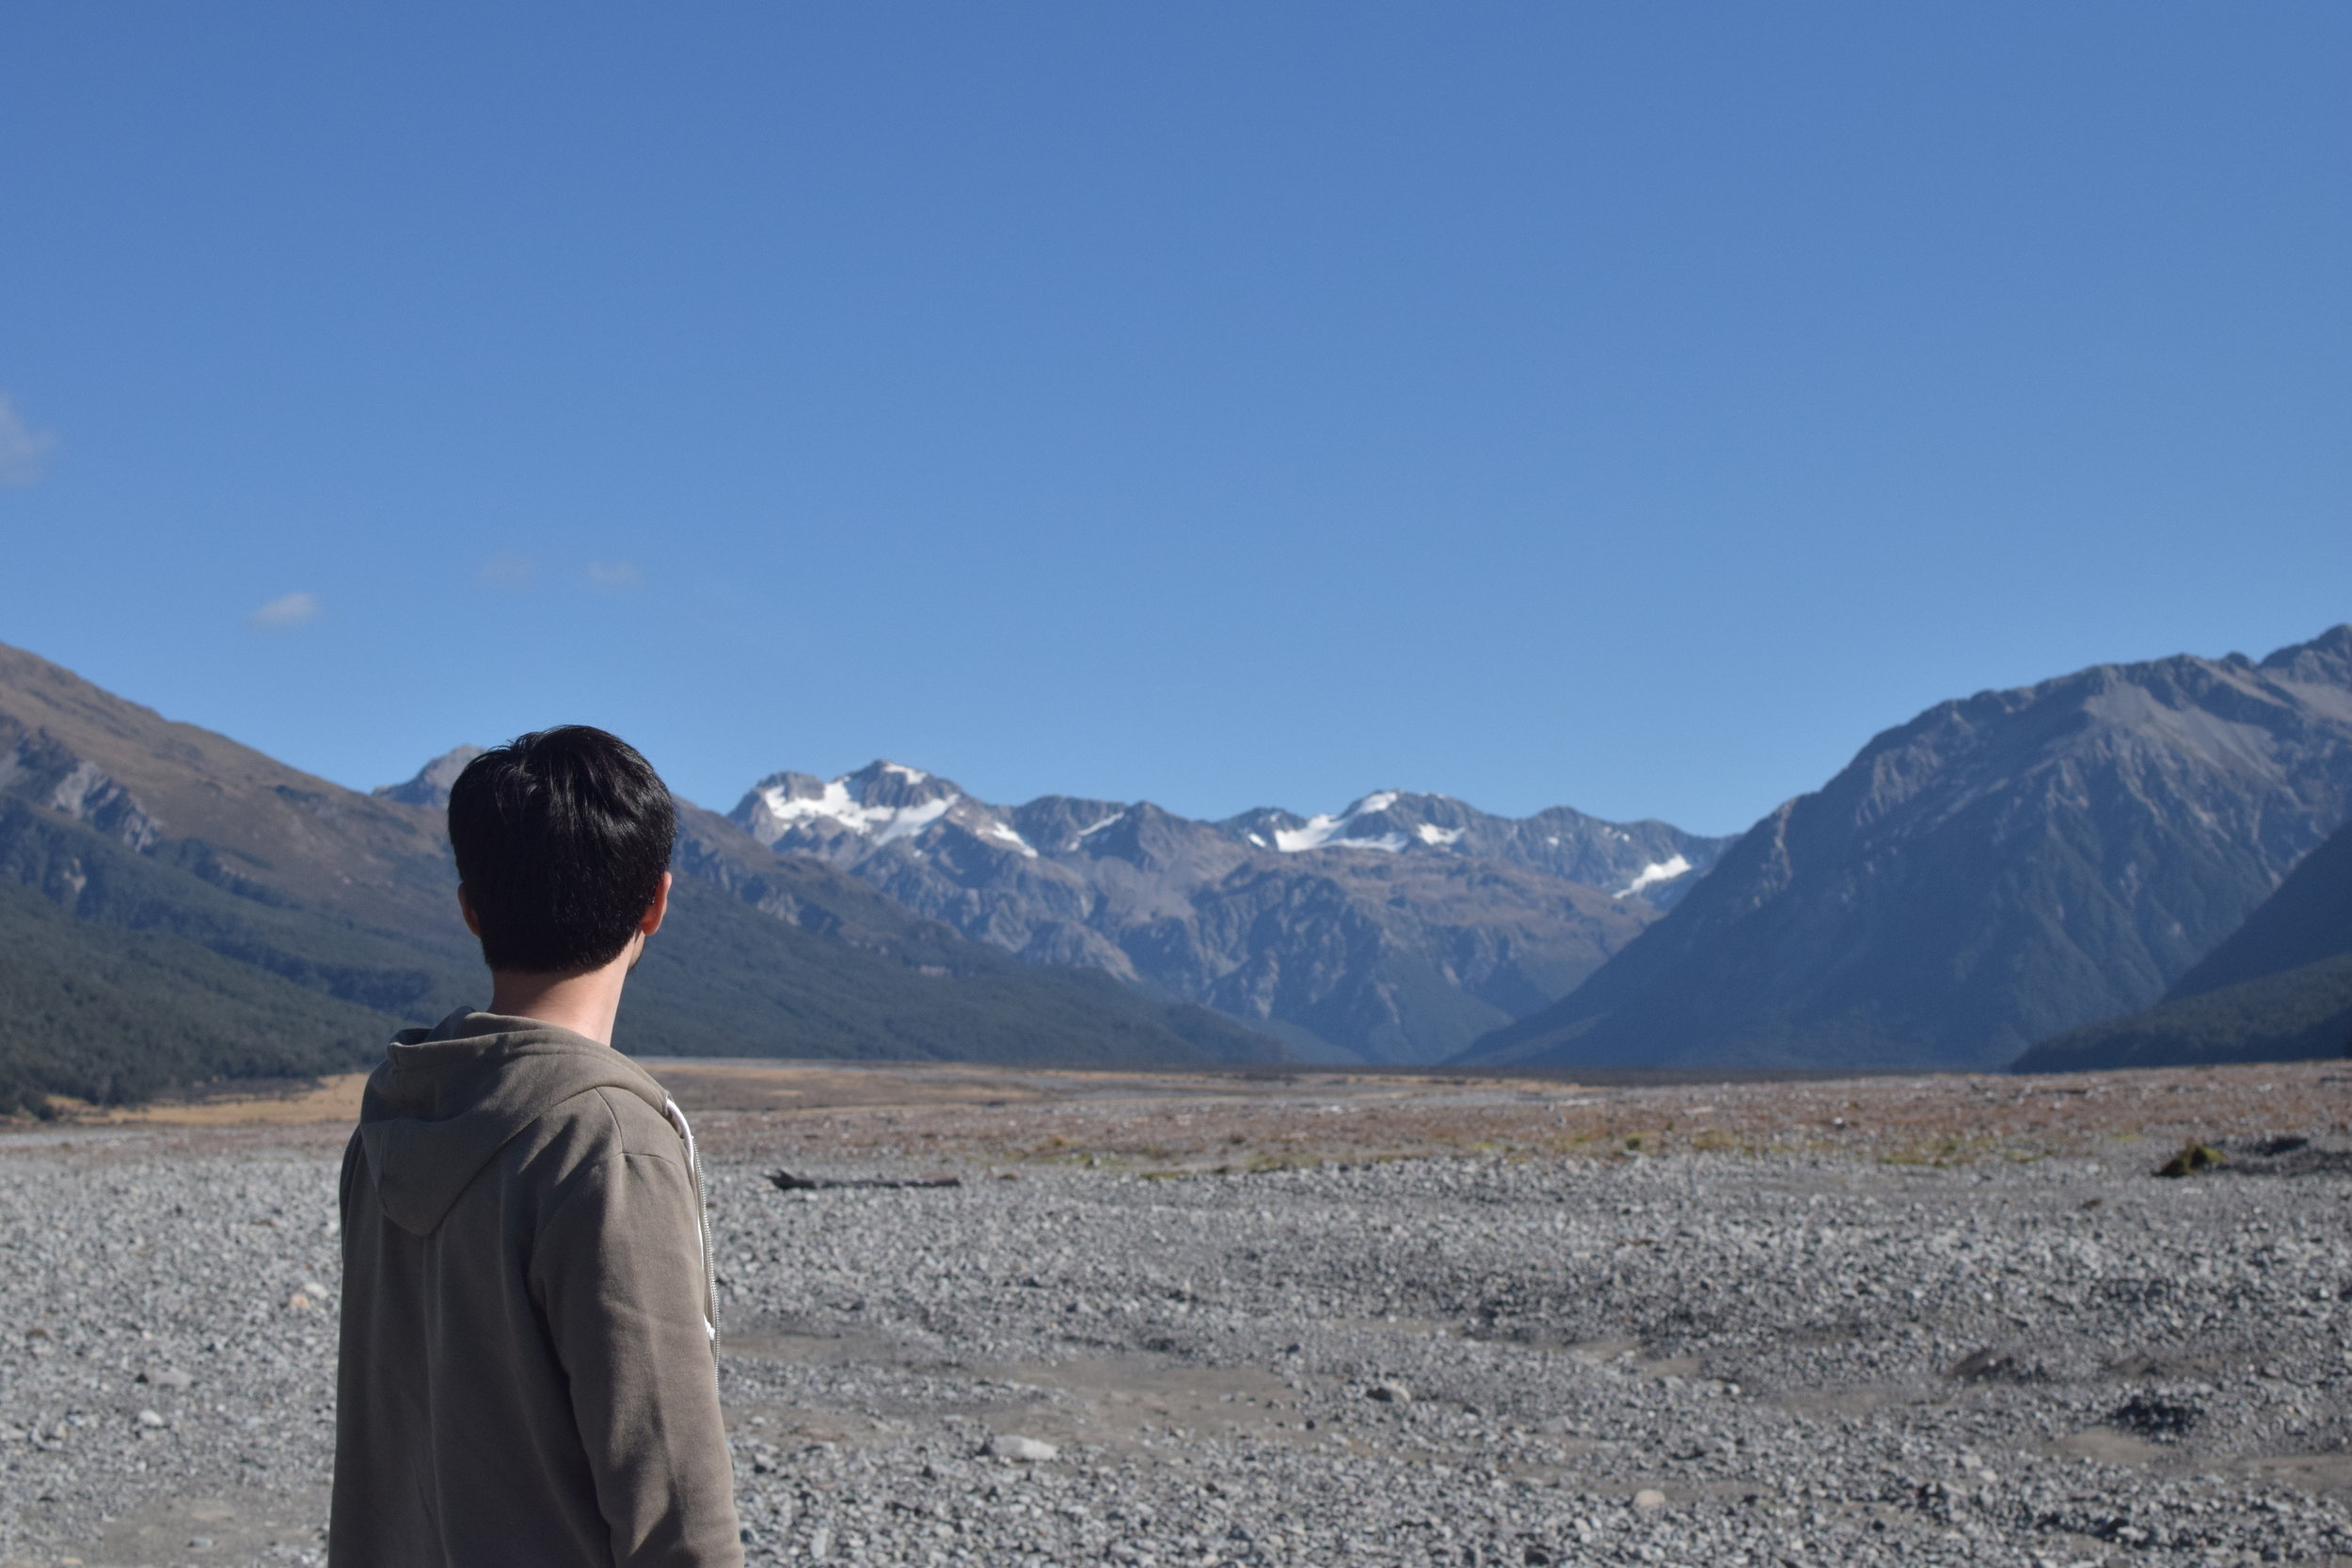 KANO Travel & Trip to Arthur's Pass | New Zealand